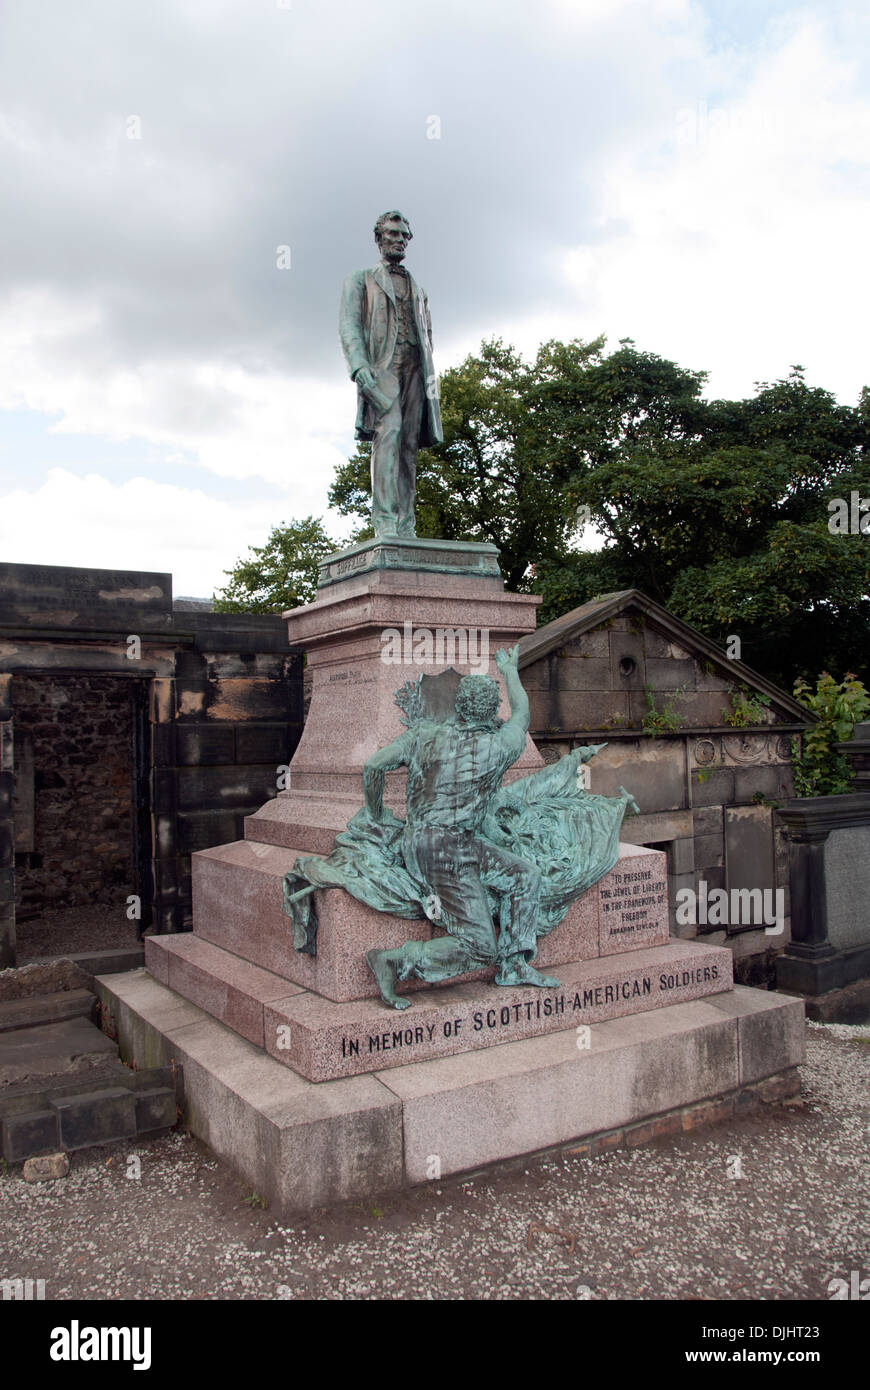 SCOTLAND; EDINBURGH; STATUE OF ABRAHAM LINCOLN, A MEMORIAL TO SCOTTISH AND AMERICAN SOLDIERS; OLD CALTON CEMETERY Stock Photo